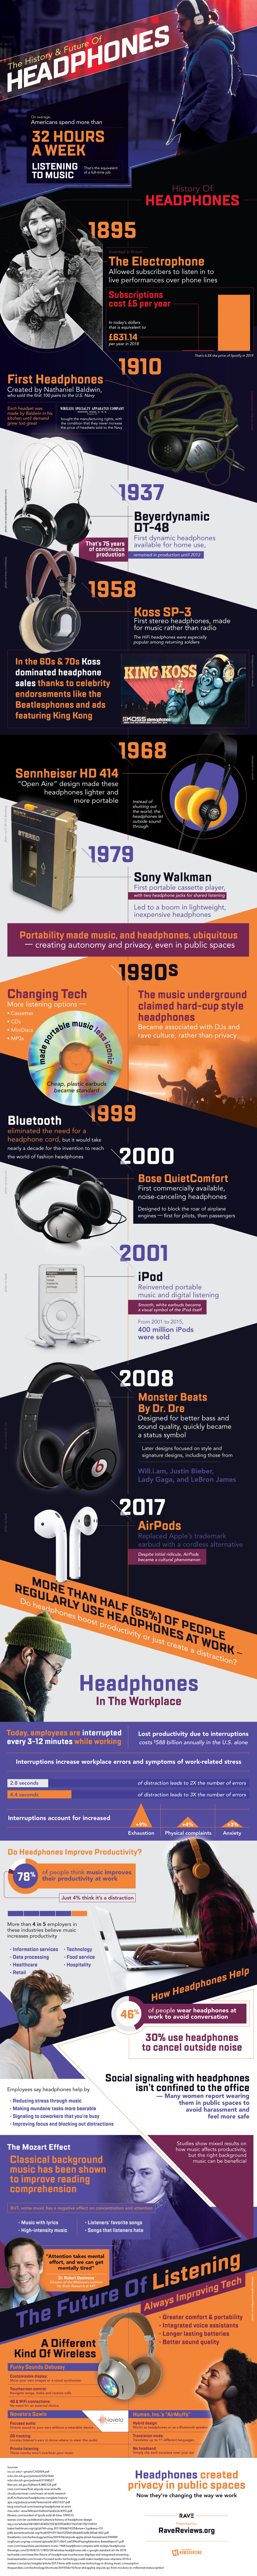 The History & Future Of Headphones